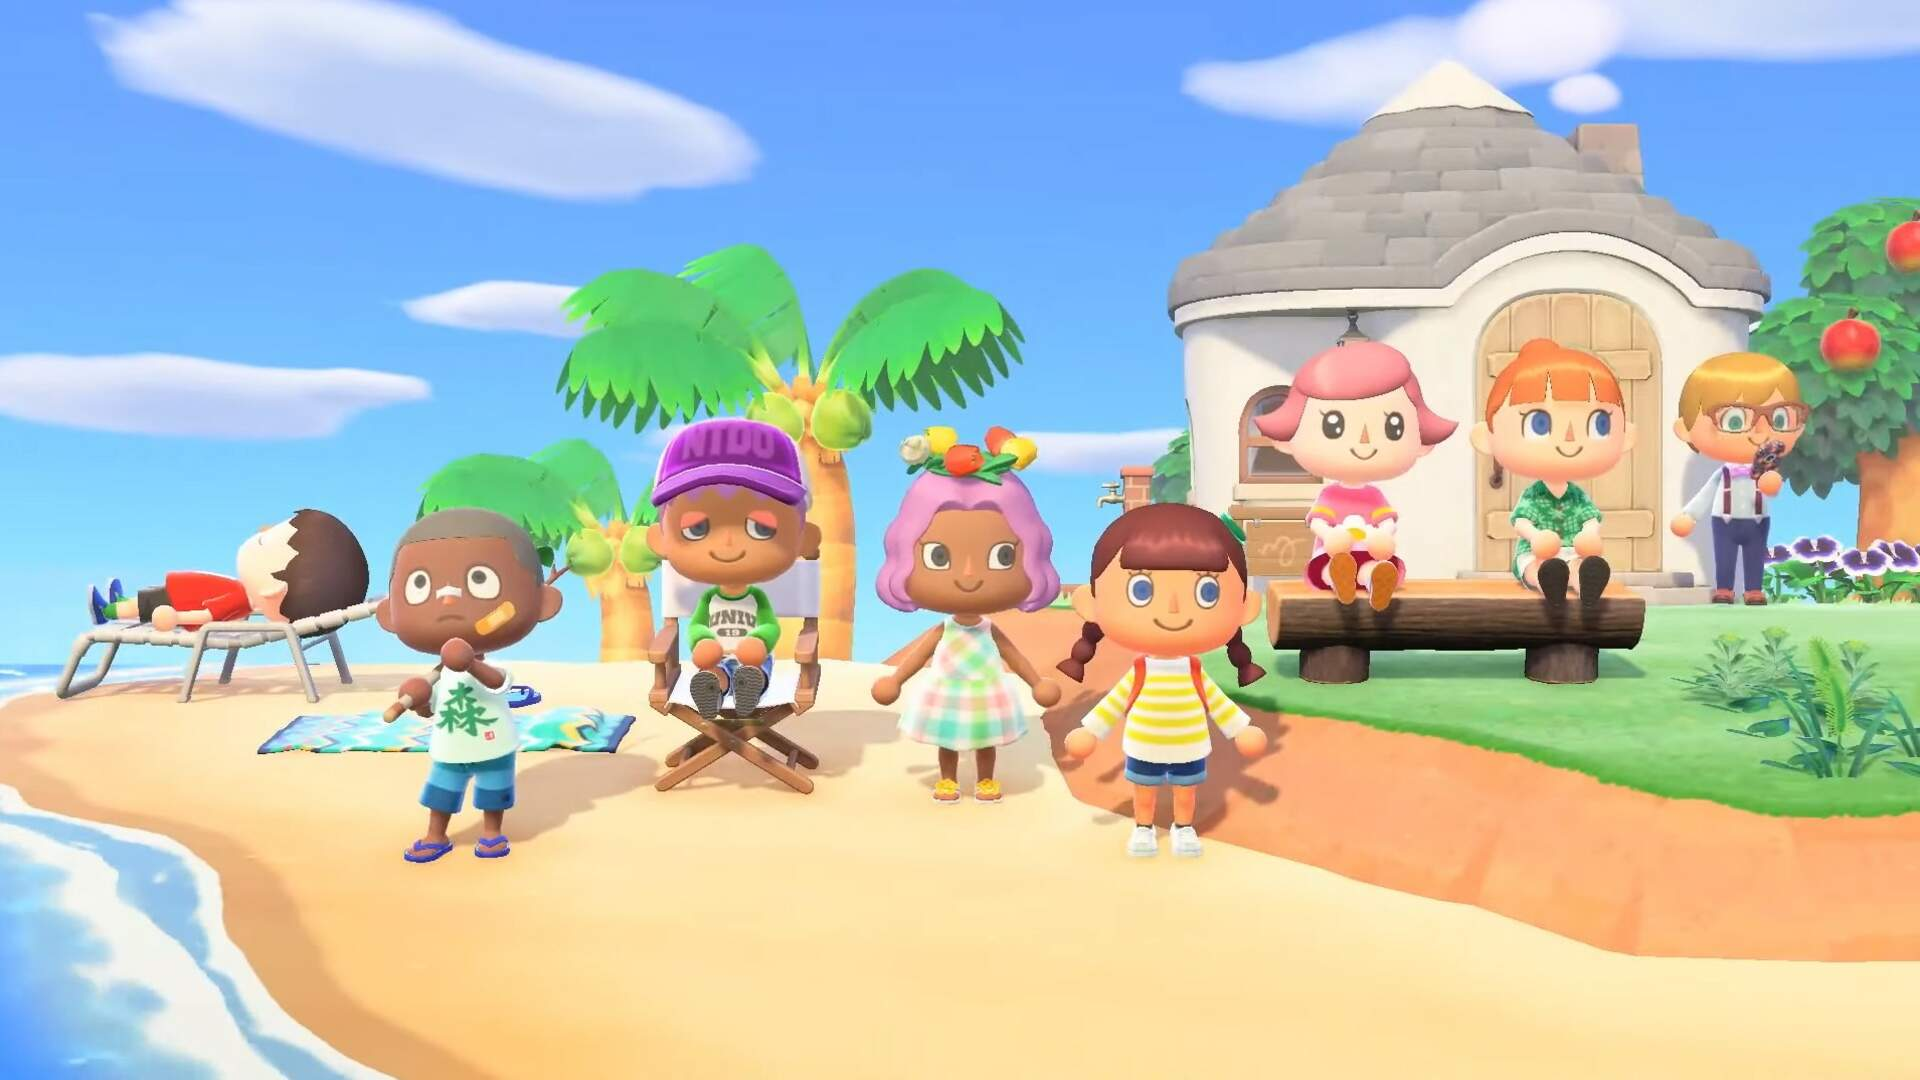 Animal Crossing New Horizons: What is the Max Number of Villagers?